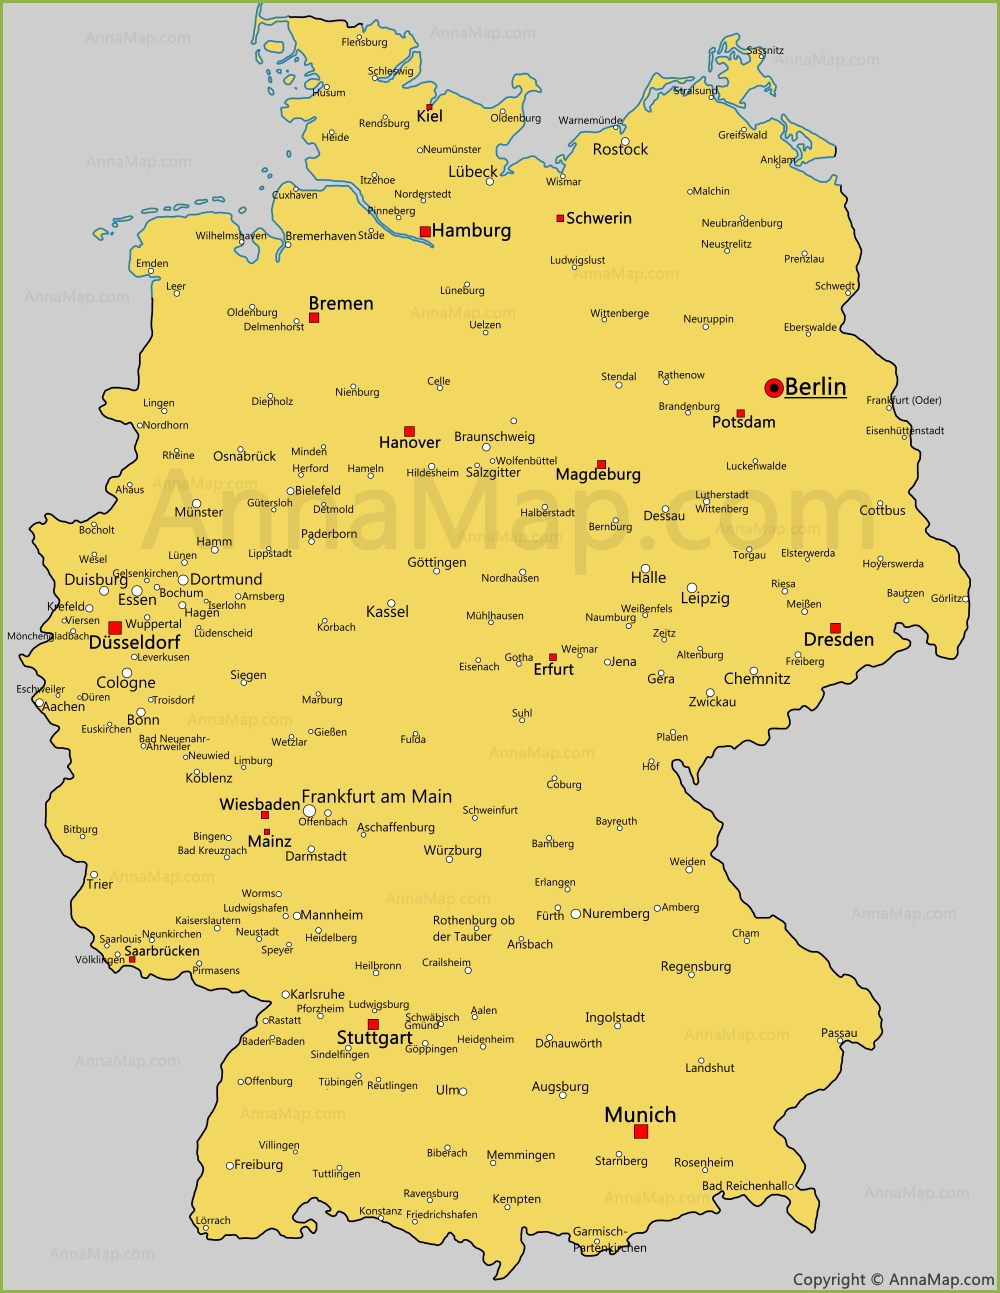 Germany cities map | Cities and towns in Germany - AnnaMap.com